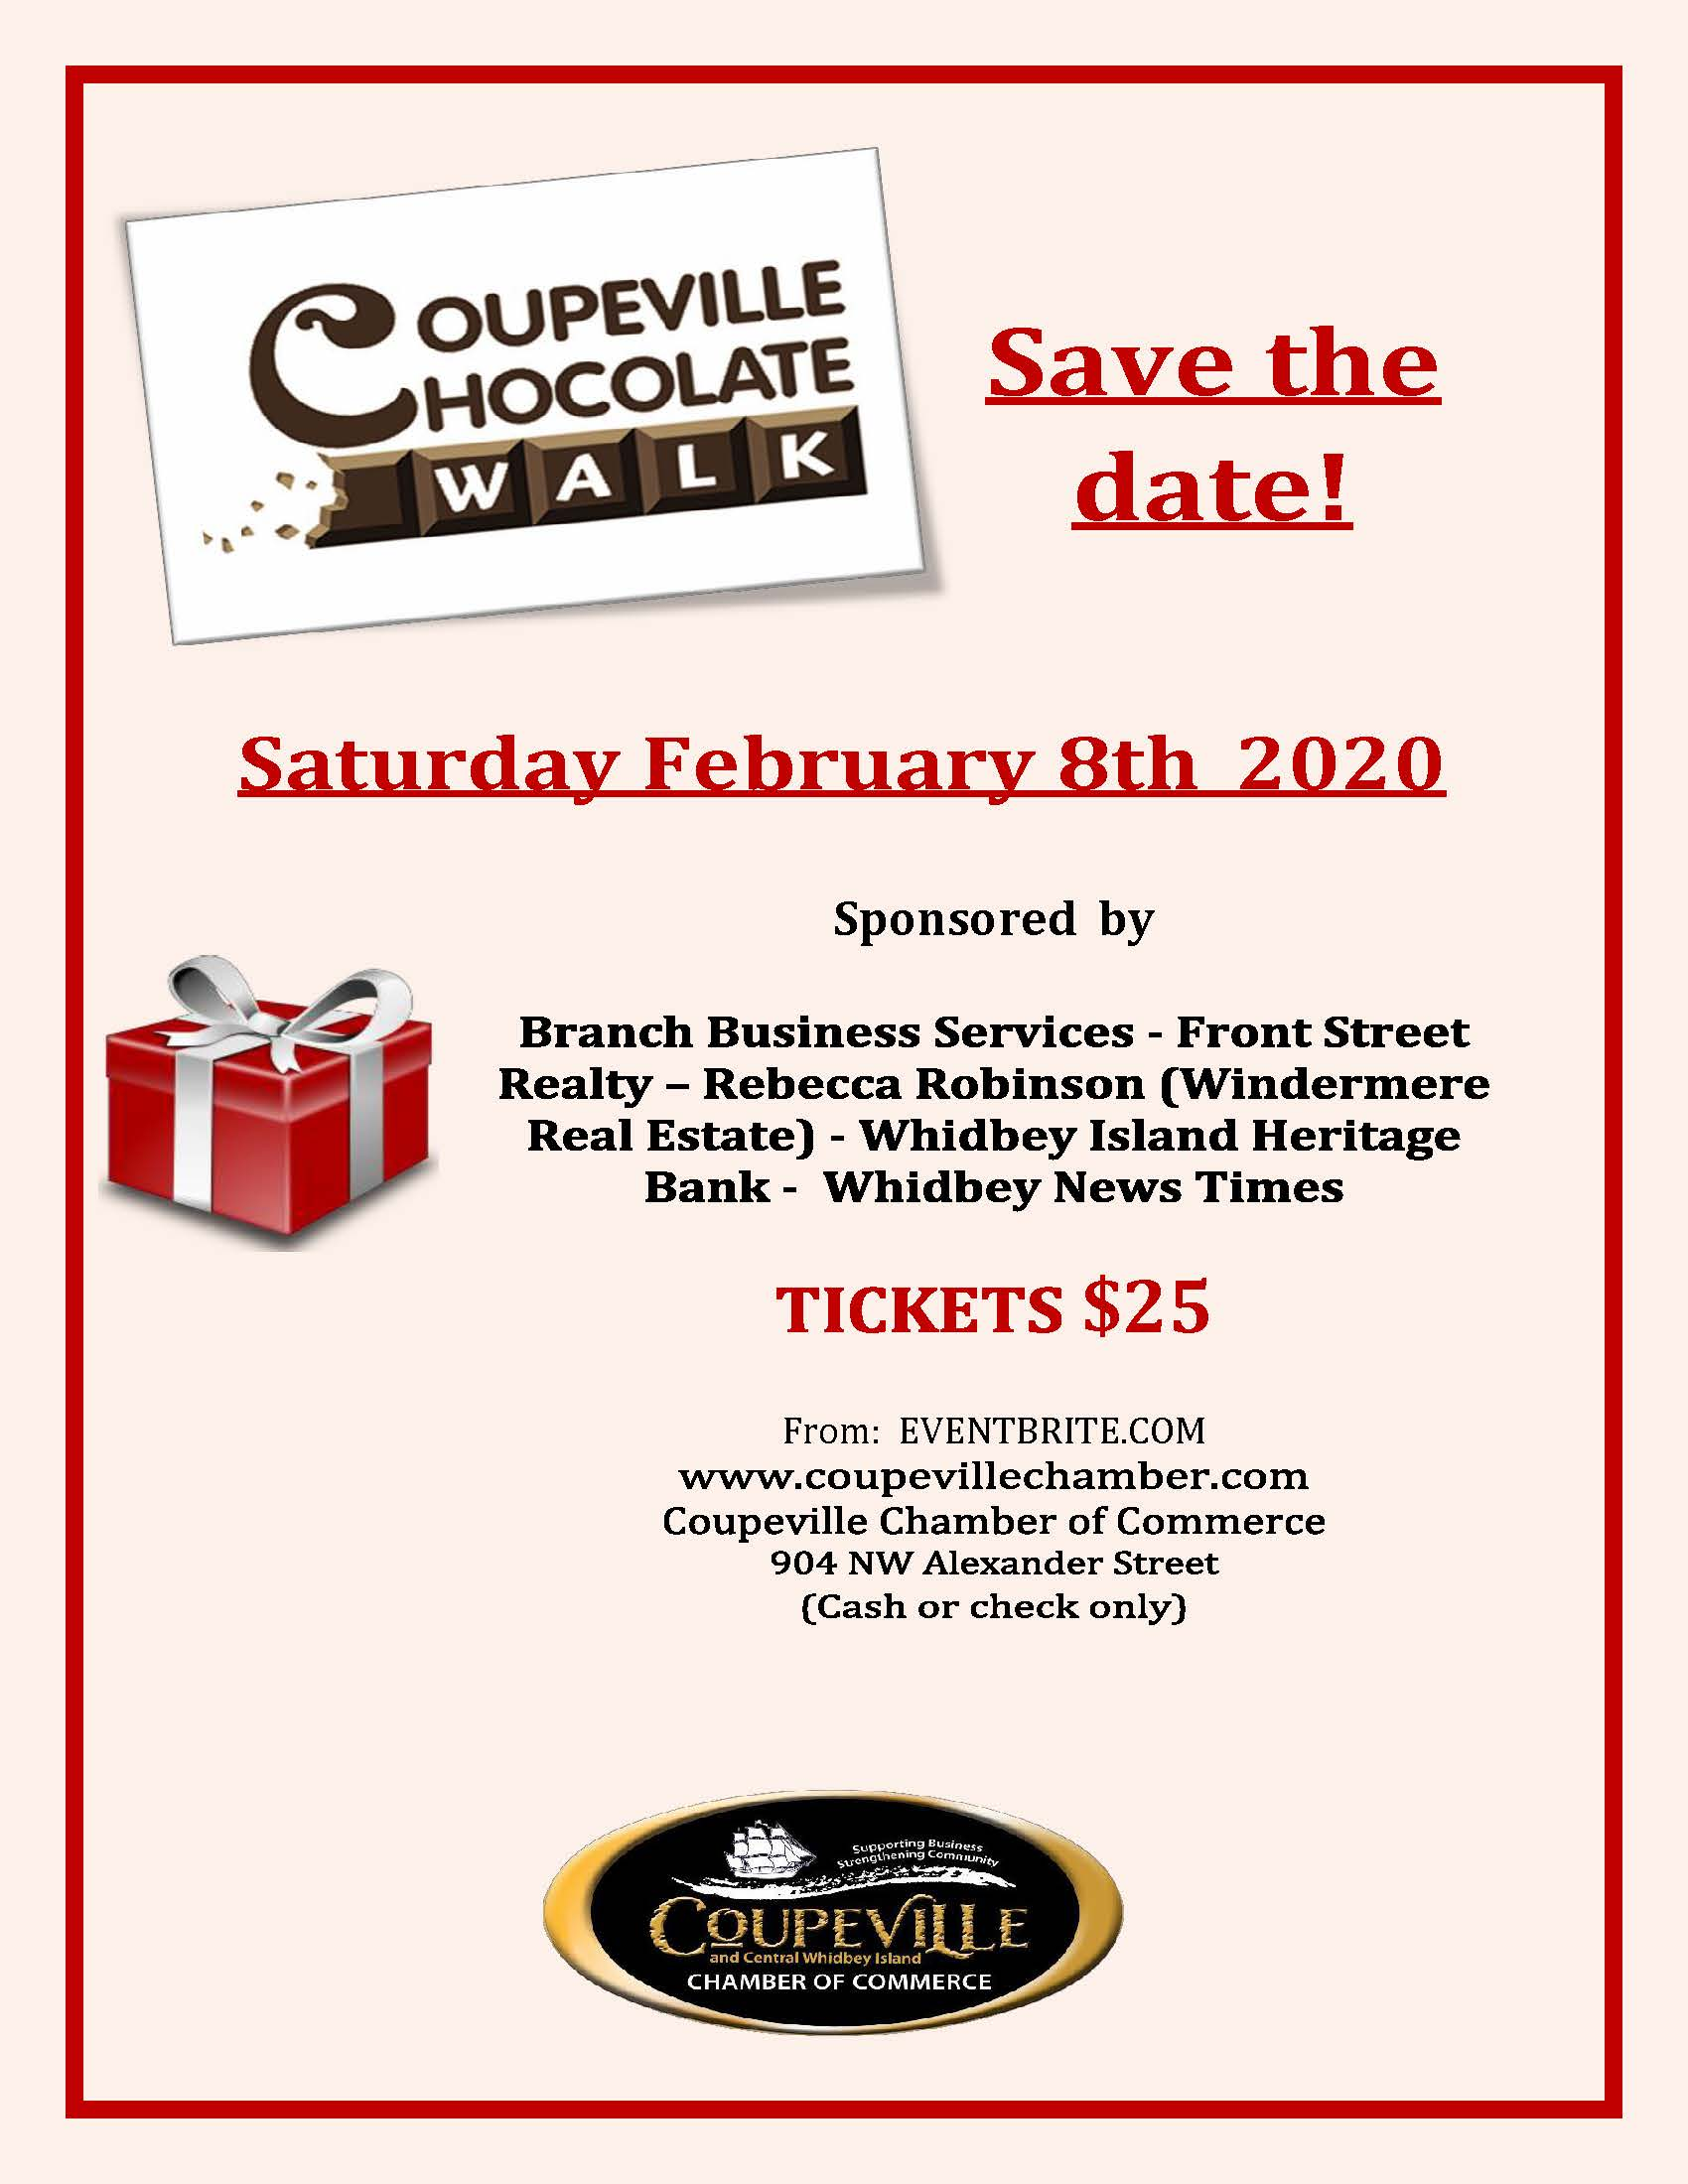 Chocolate Walk Save The Date POSTER 2020